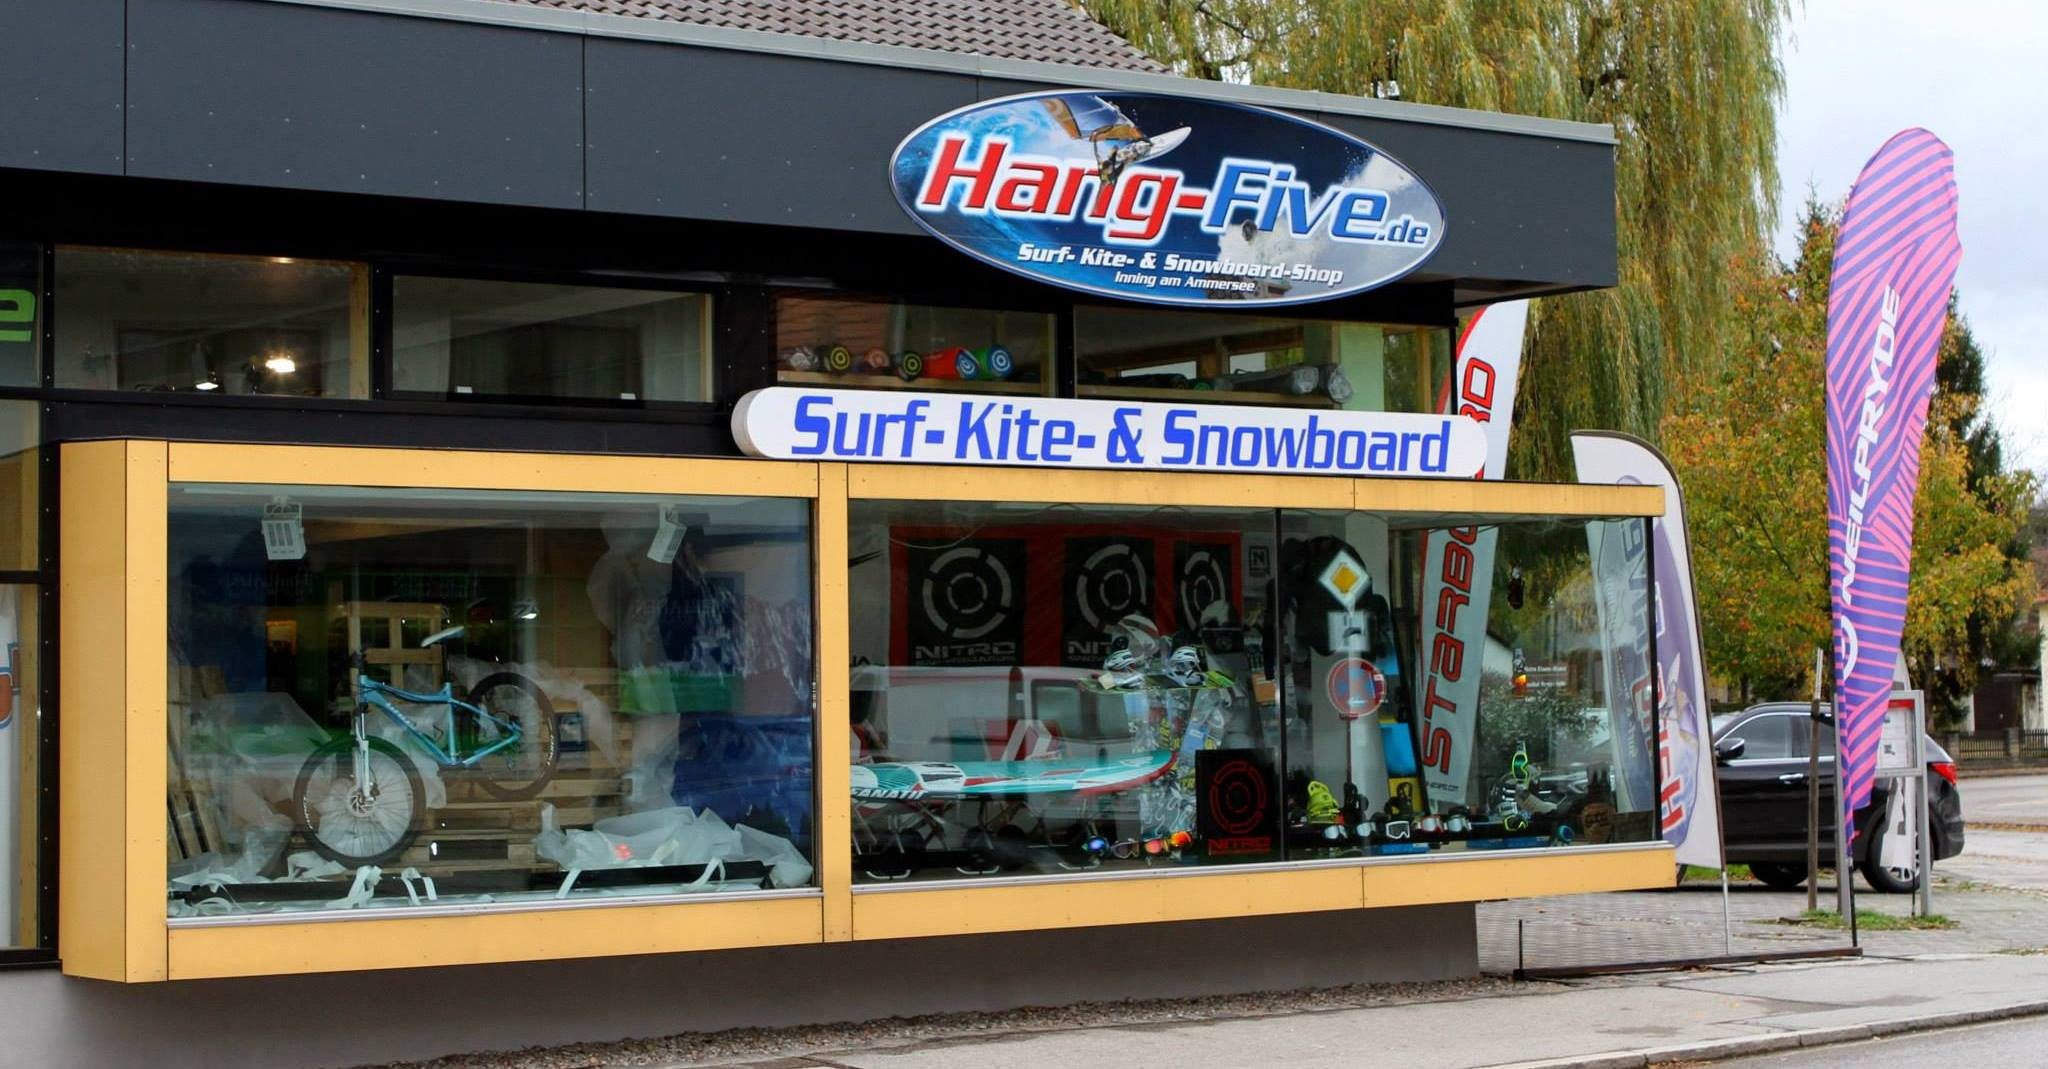 Hang-Five Surf- Kite- Sup- und Snowboard Shop